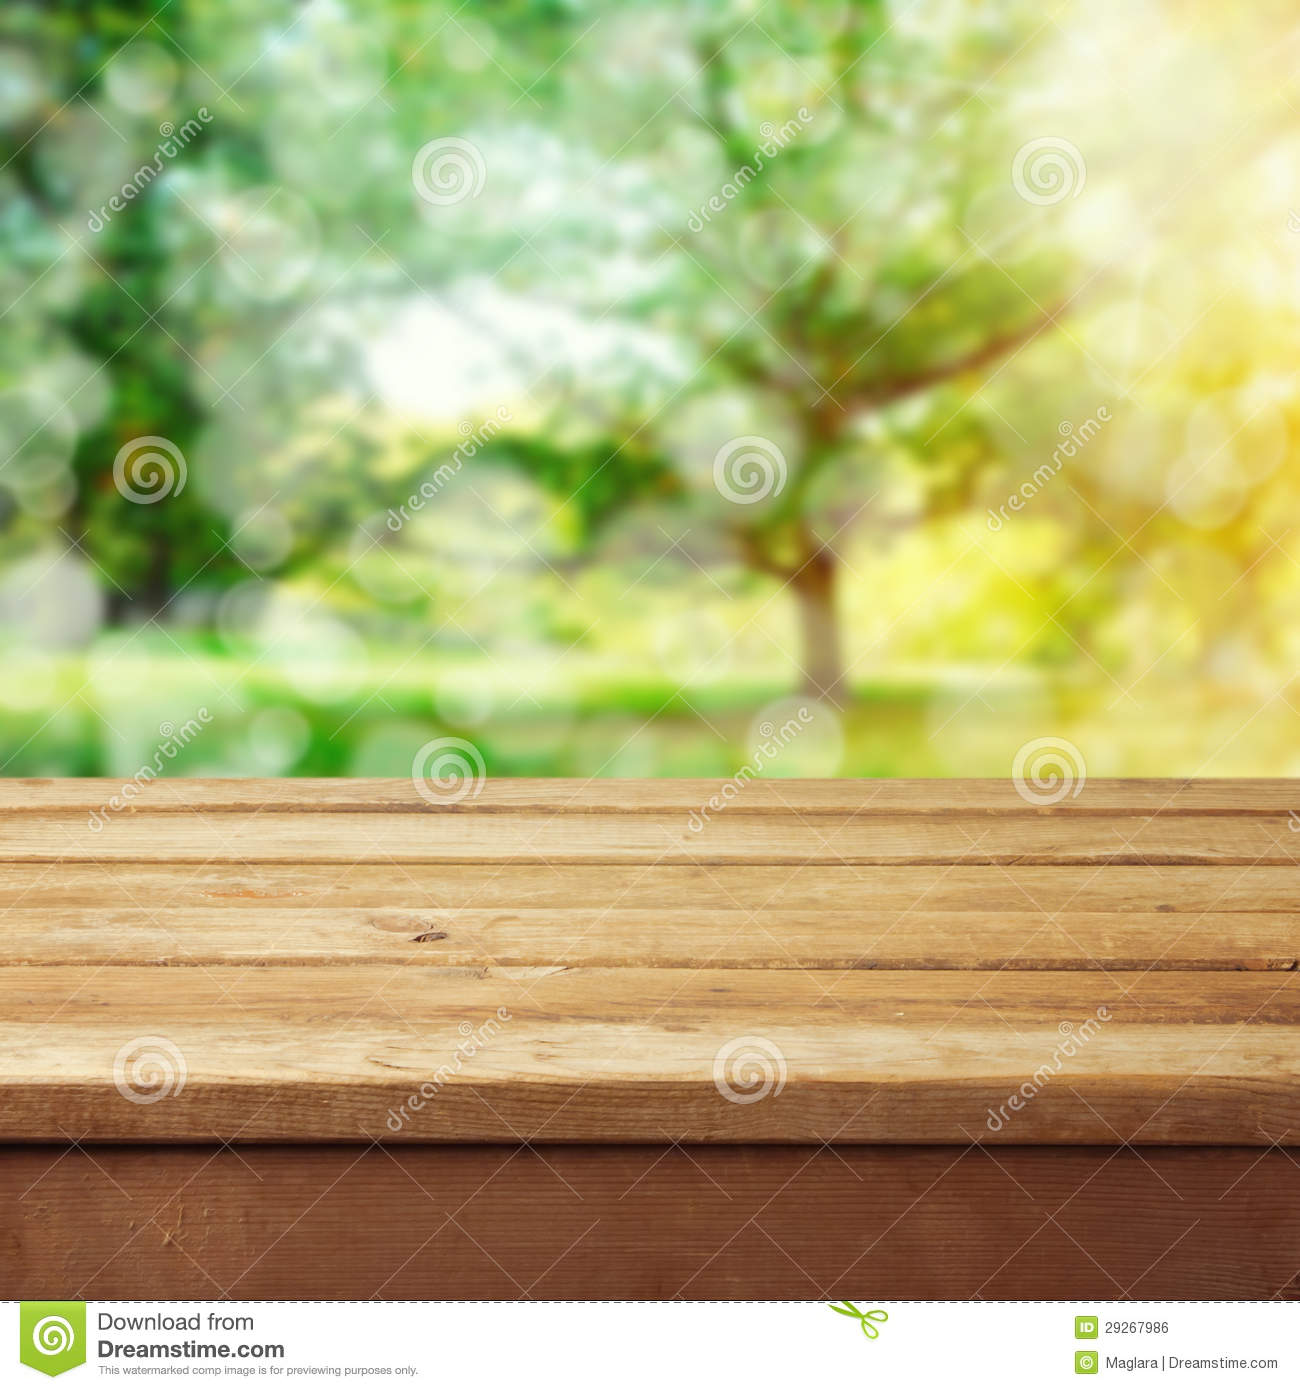 Background With Wooden Deck Table Royalty Free Stock Image ...